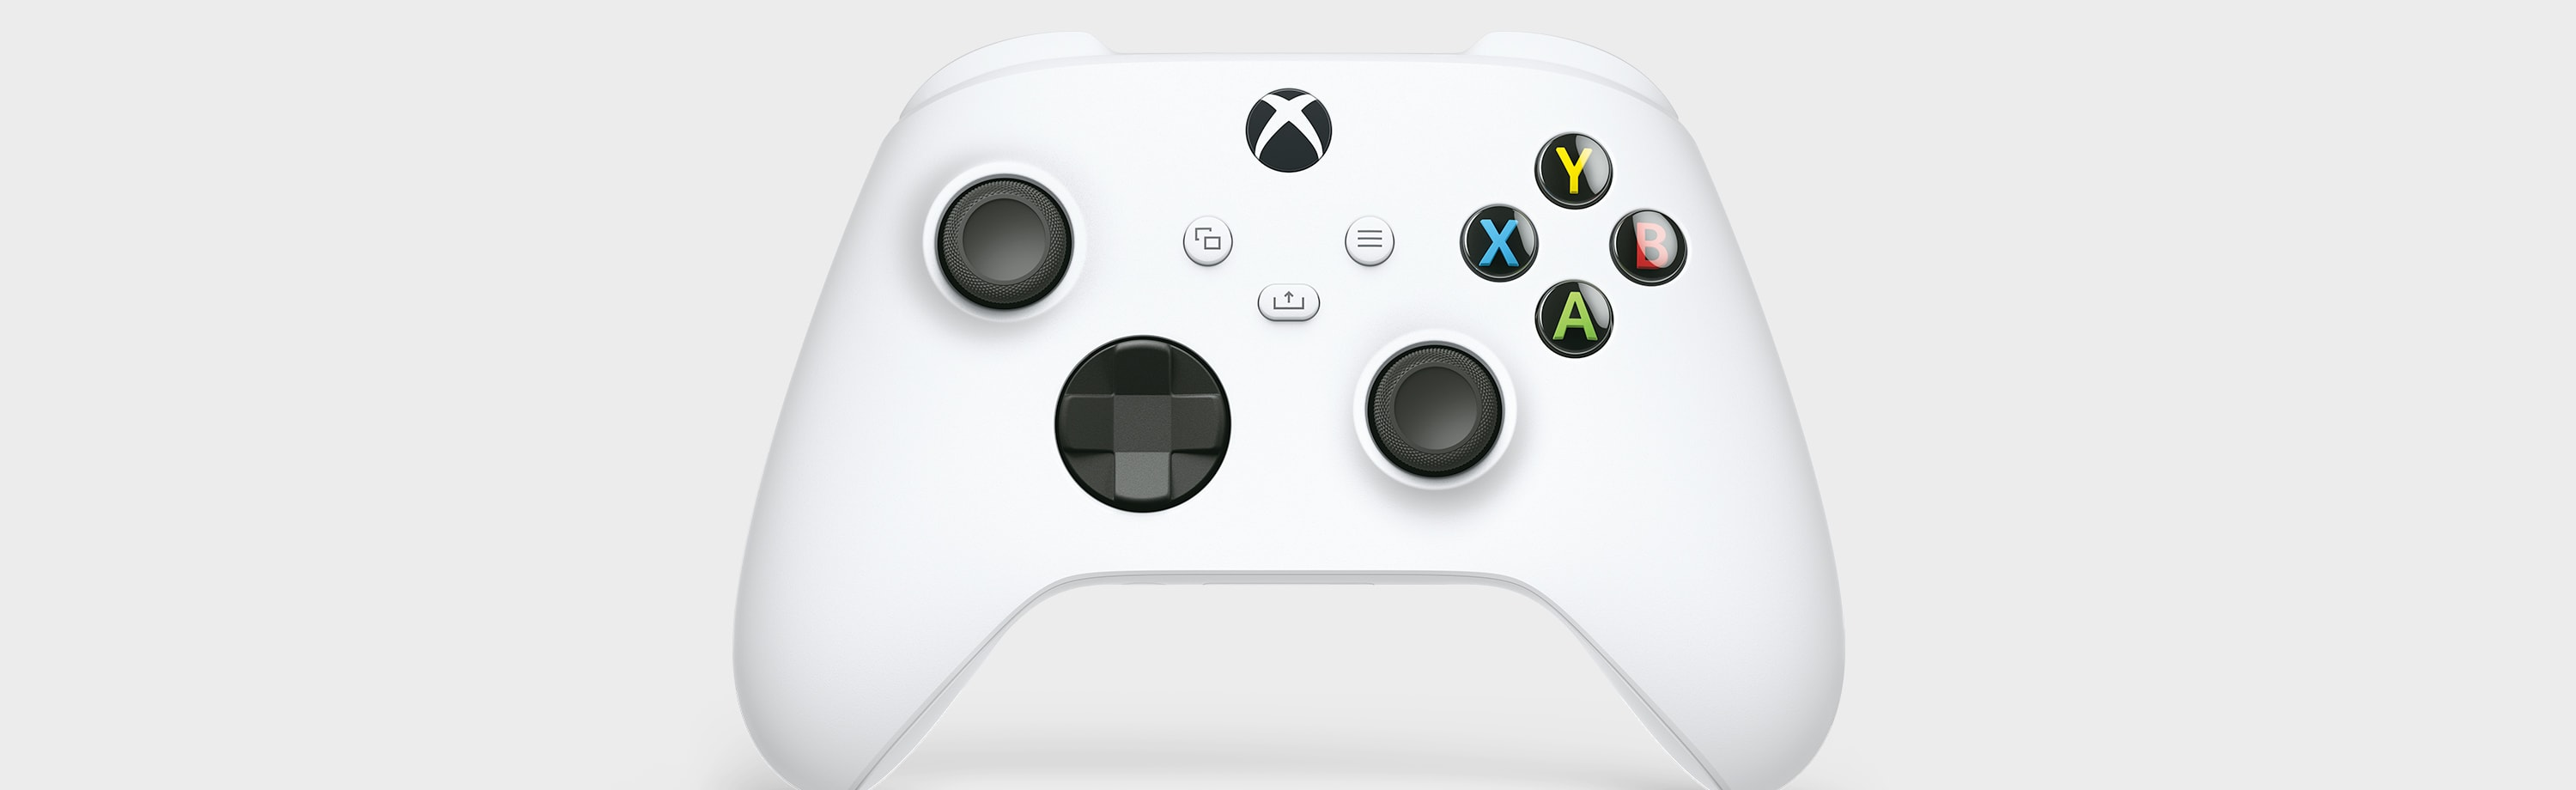 New Design of the Robot White Xbox Wireless Controller